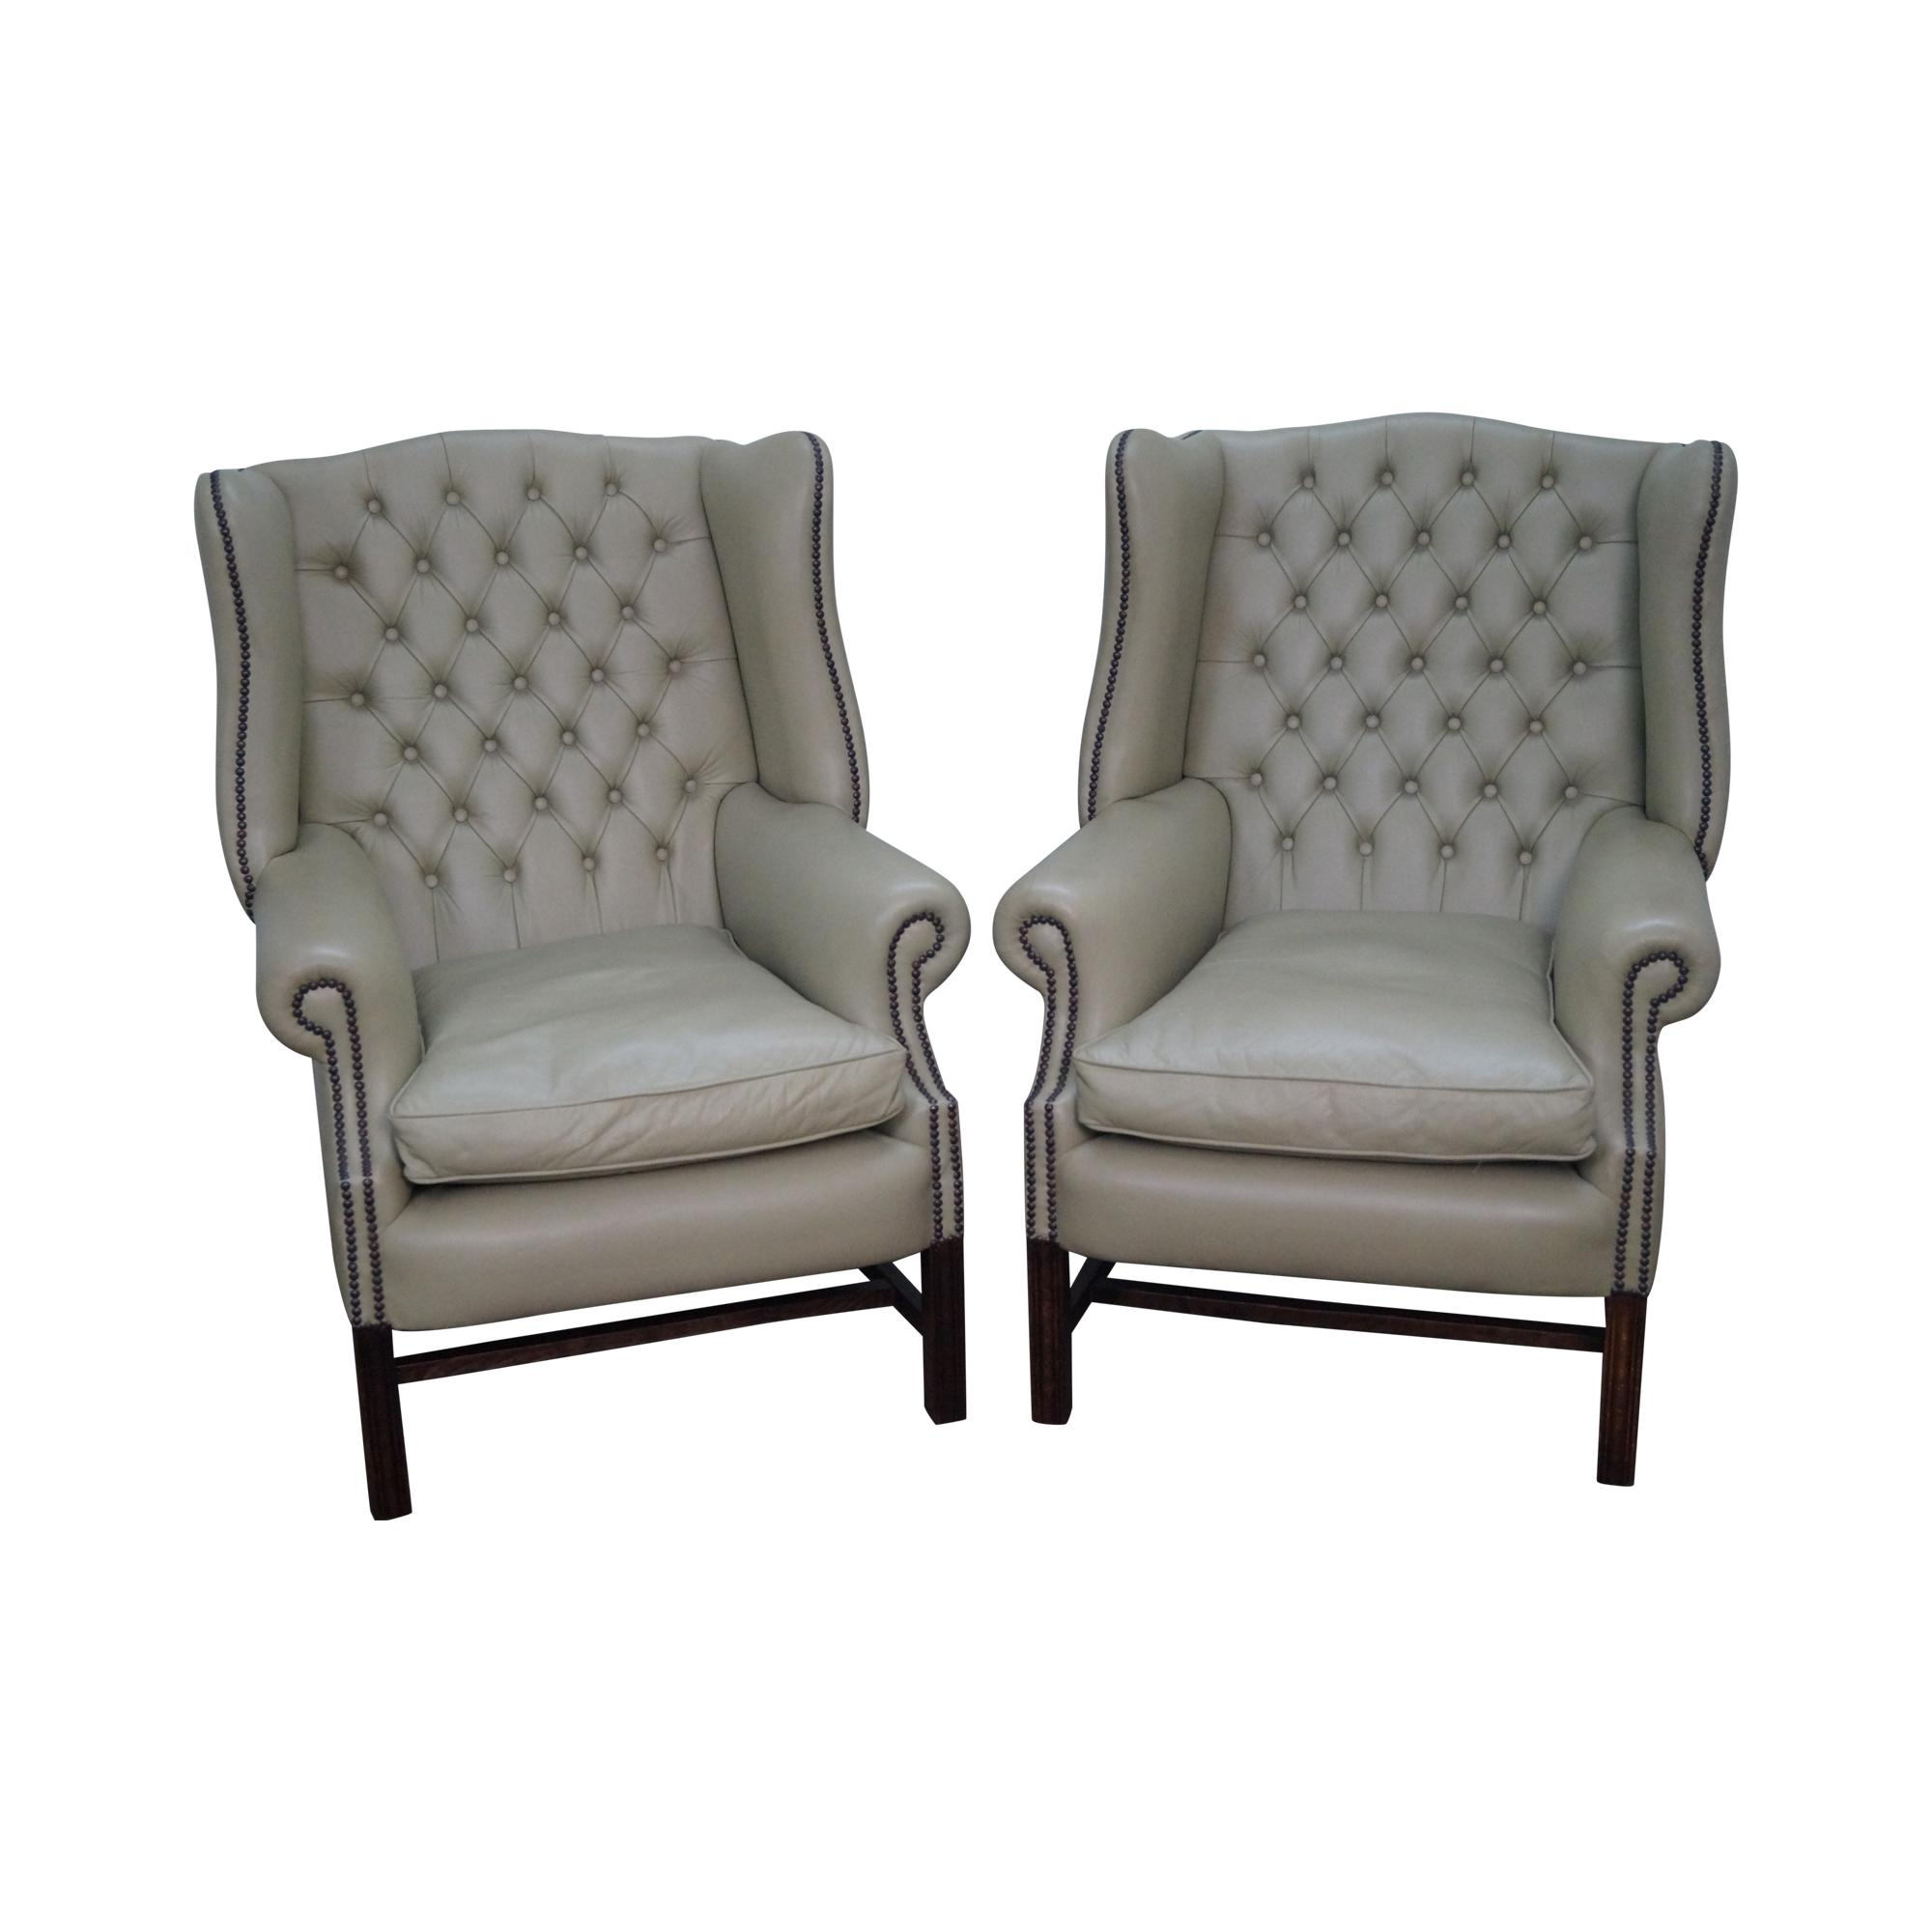 tufted leather chesterfield chippendale style wing chairs a pair chairish. Black Bedroom Furniture Sets. Home Design Ideas